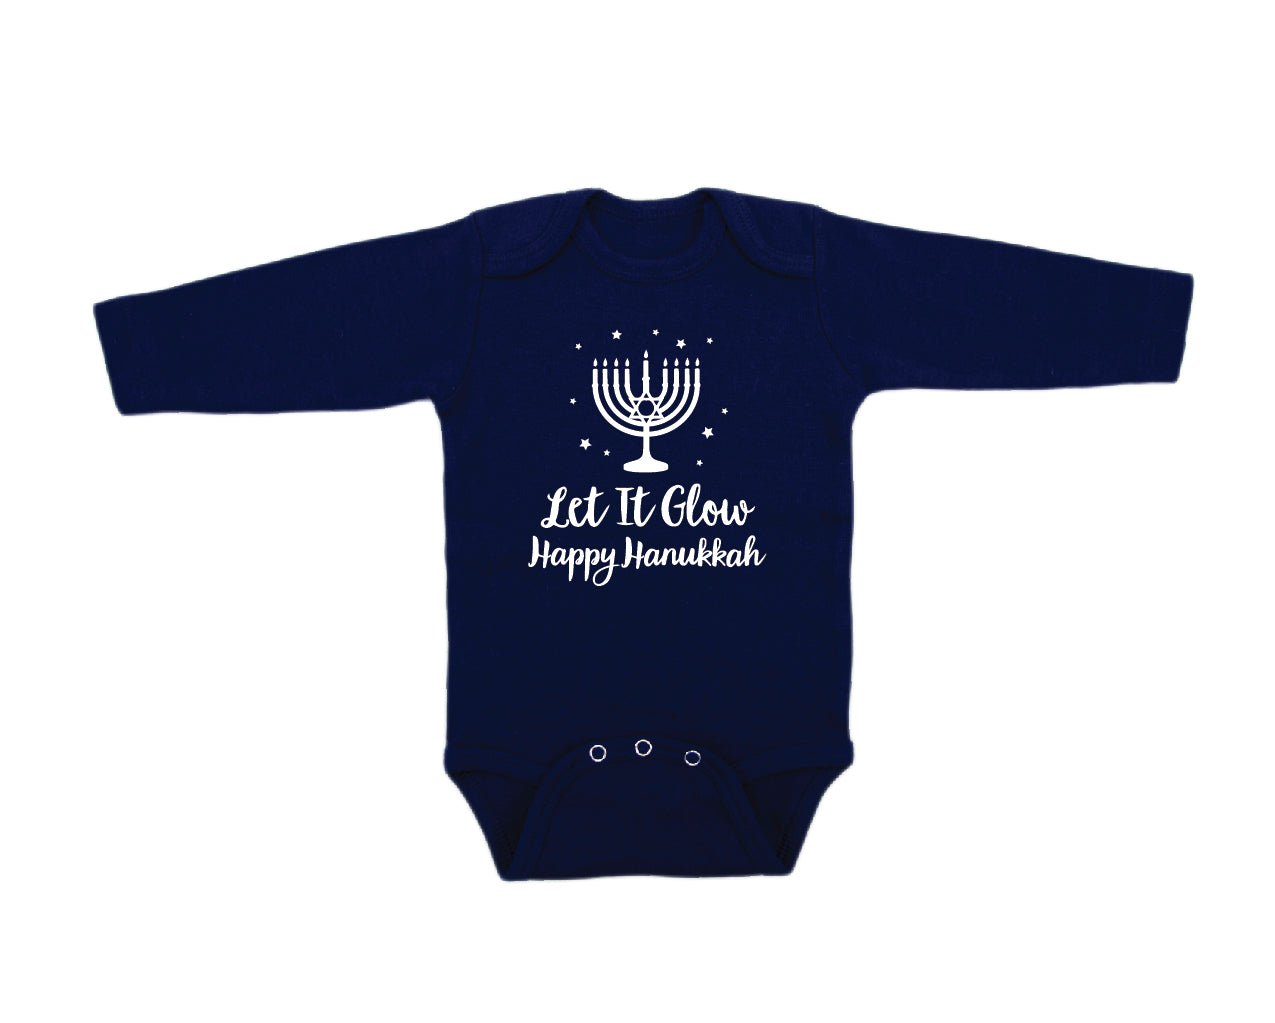 Hanukkah Long-Sleeved Navy Onesie